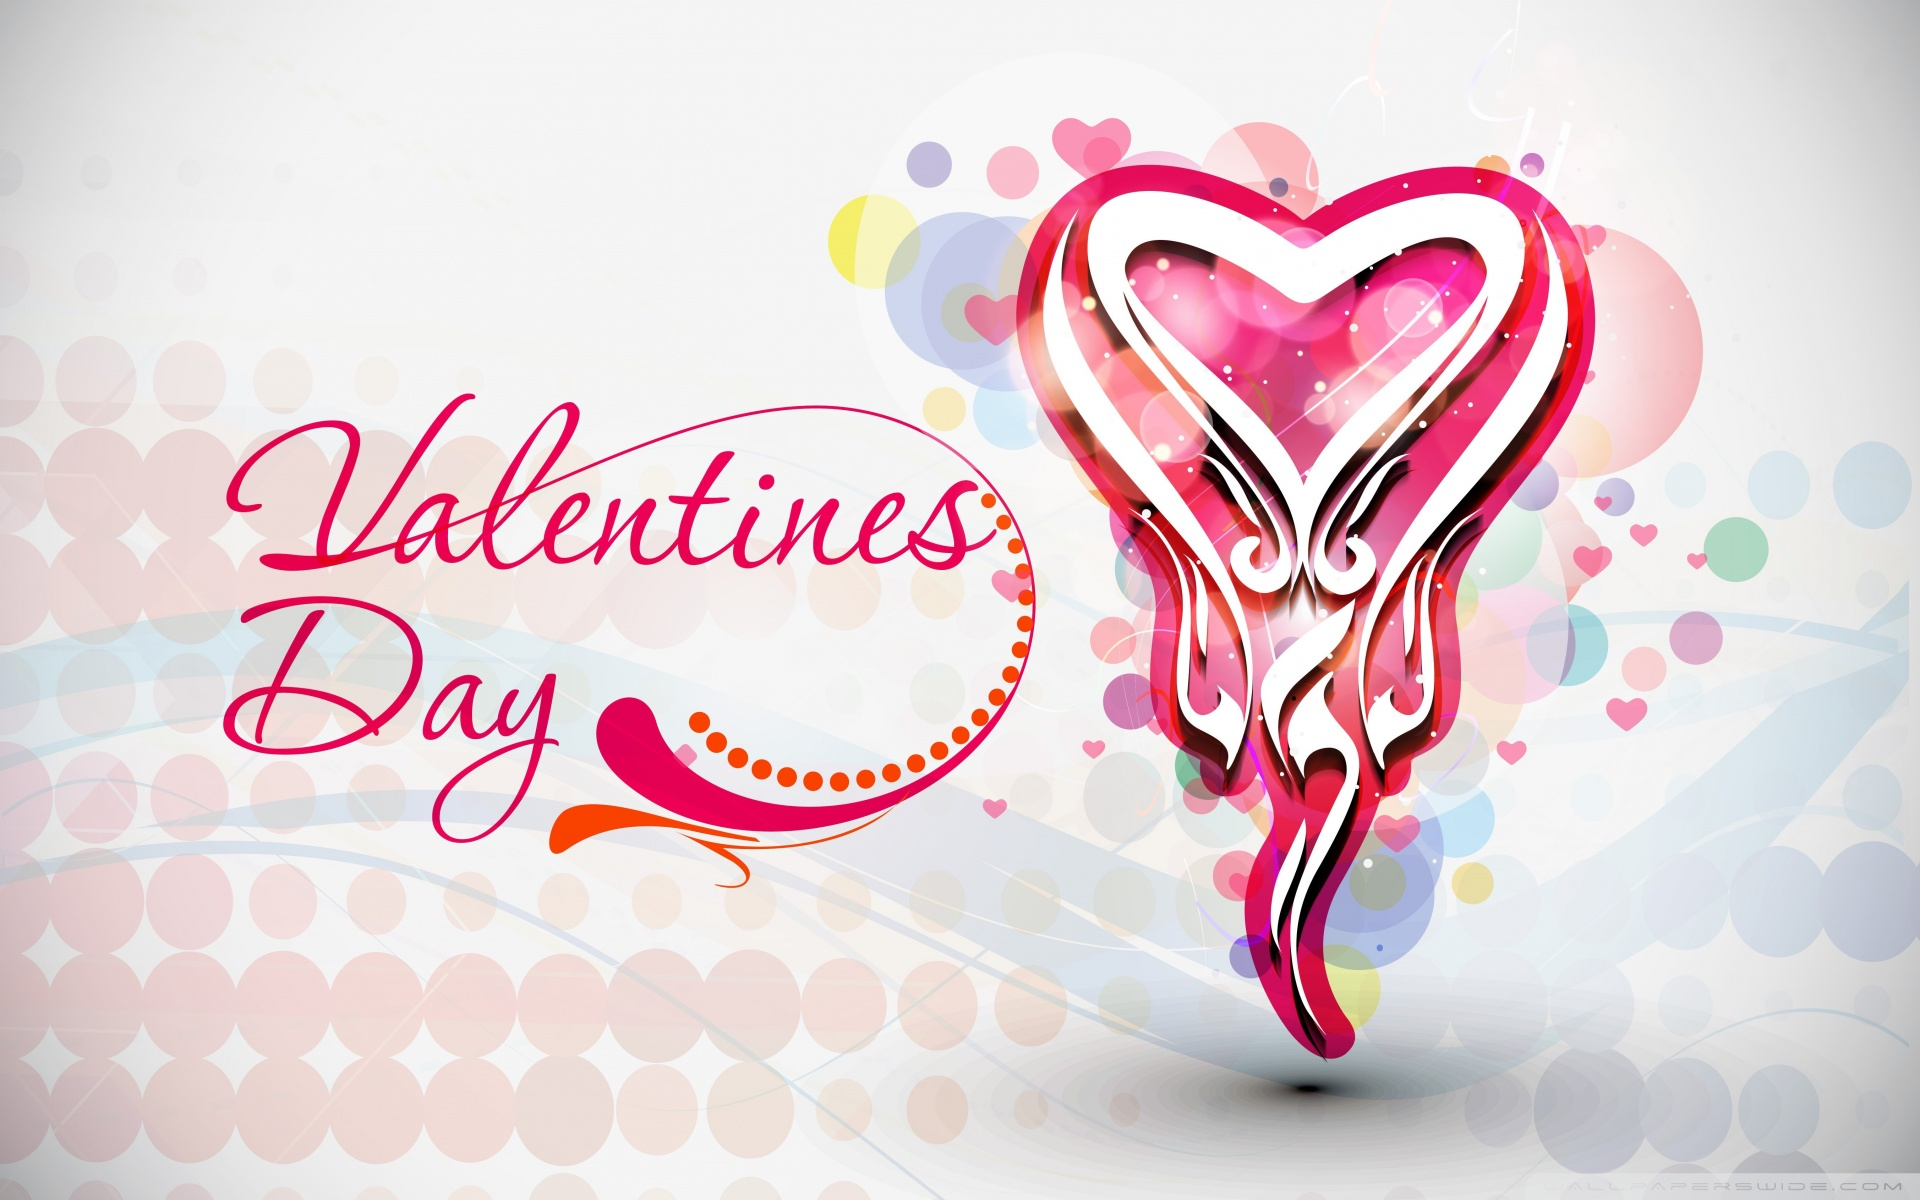 Love Valentines Day Wishes Messages SMS Quotes